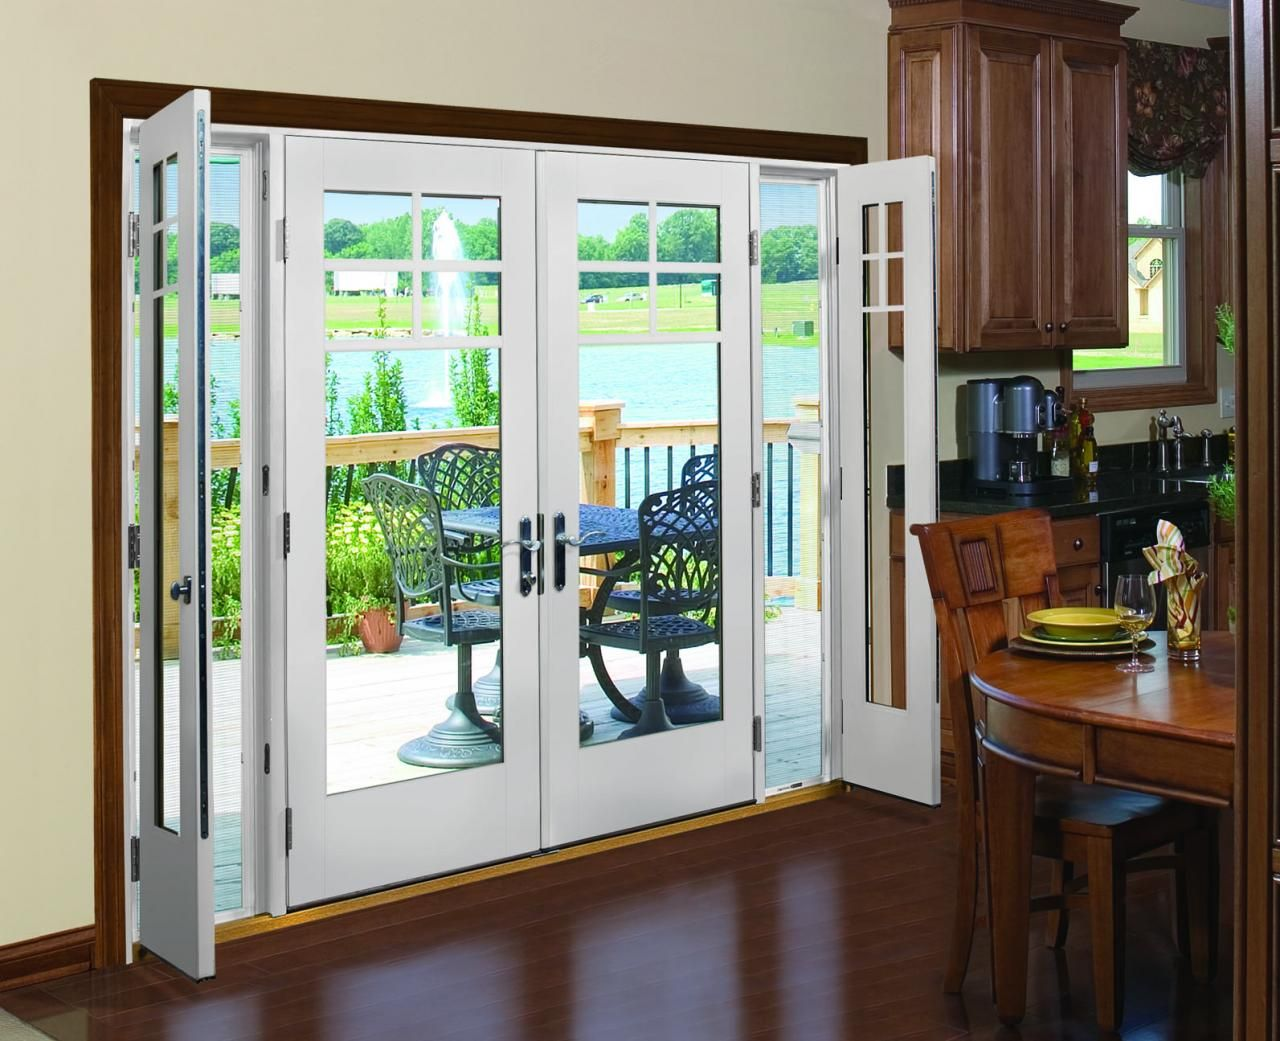 25+ best ideas about French Doors With Screens on Pinterest | Sliding french  doors, Sliding glass doors and How in french - 25+ Best Ideas About French Doors With Screens On Pinterest